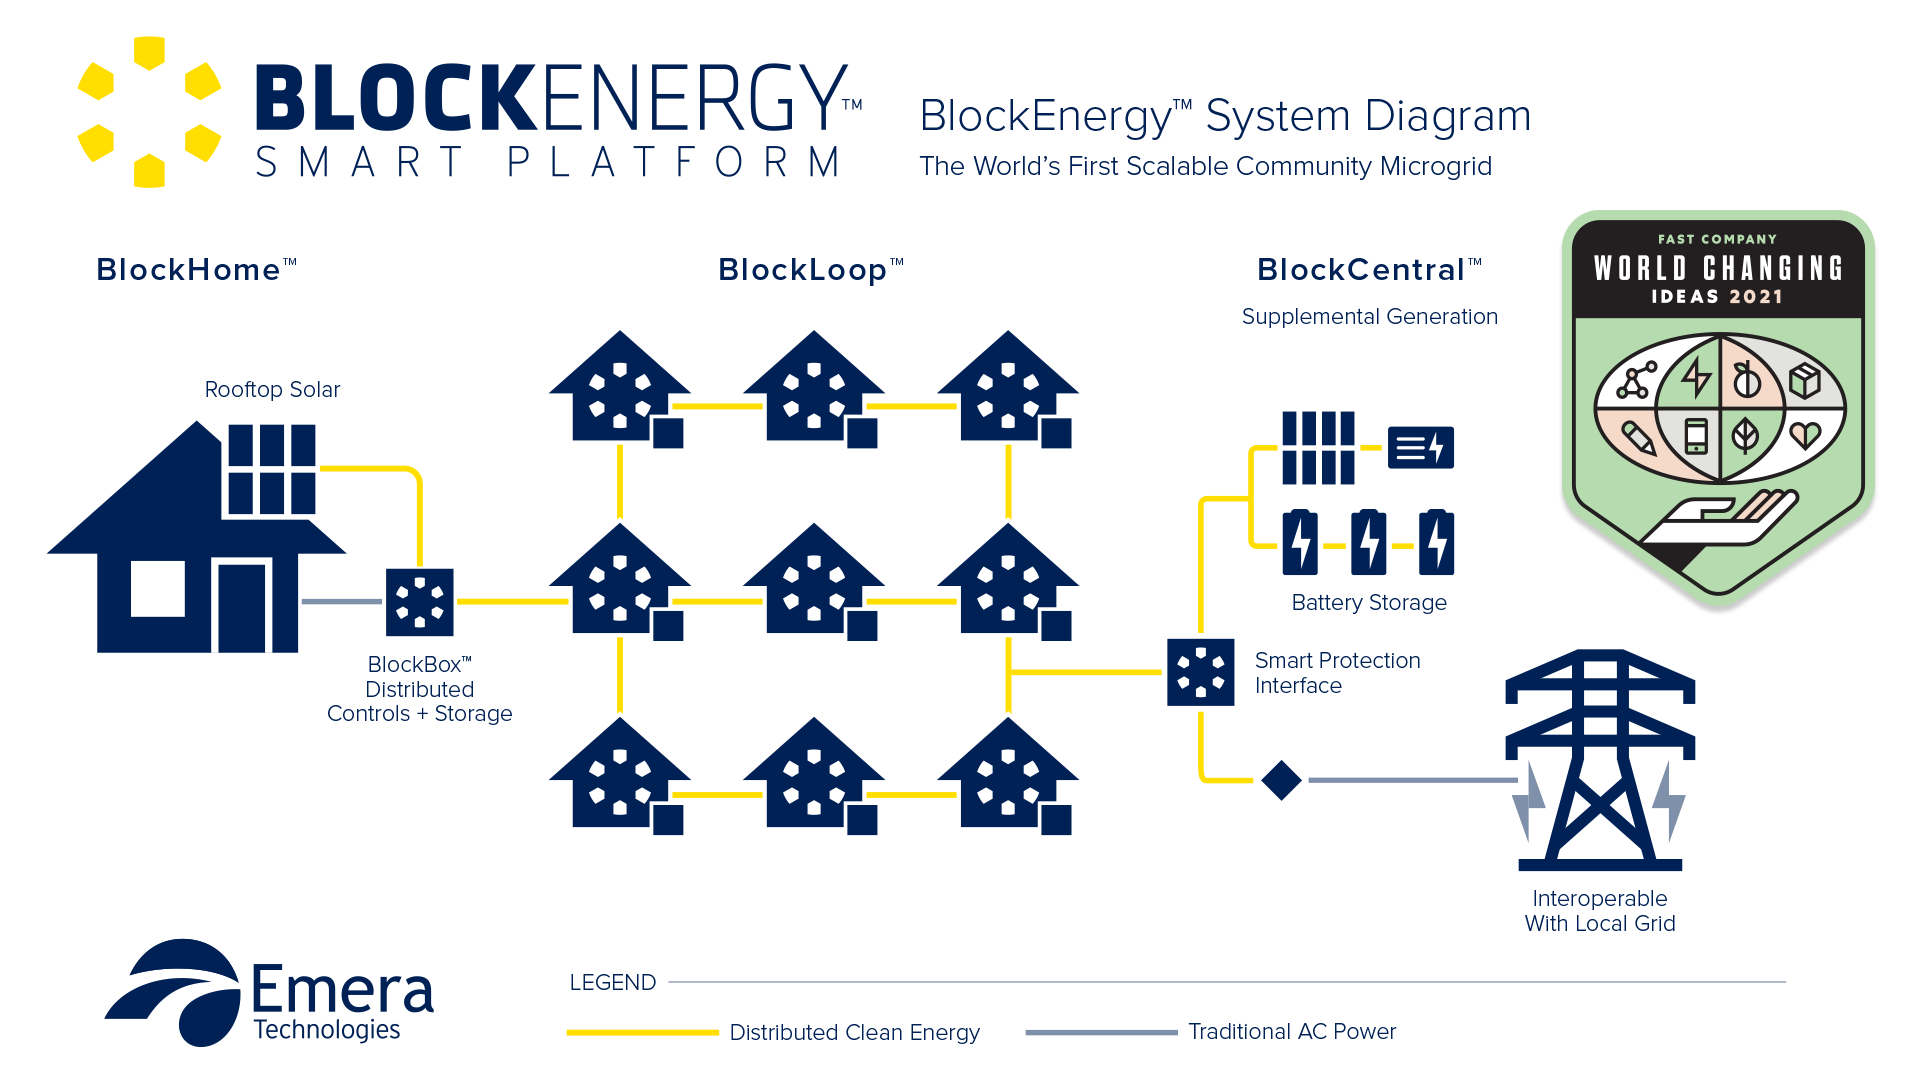 Fast Company World Changing Ideas - BlockEnergy System Diagram